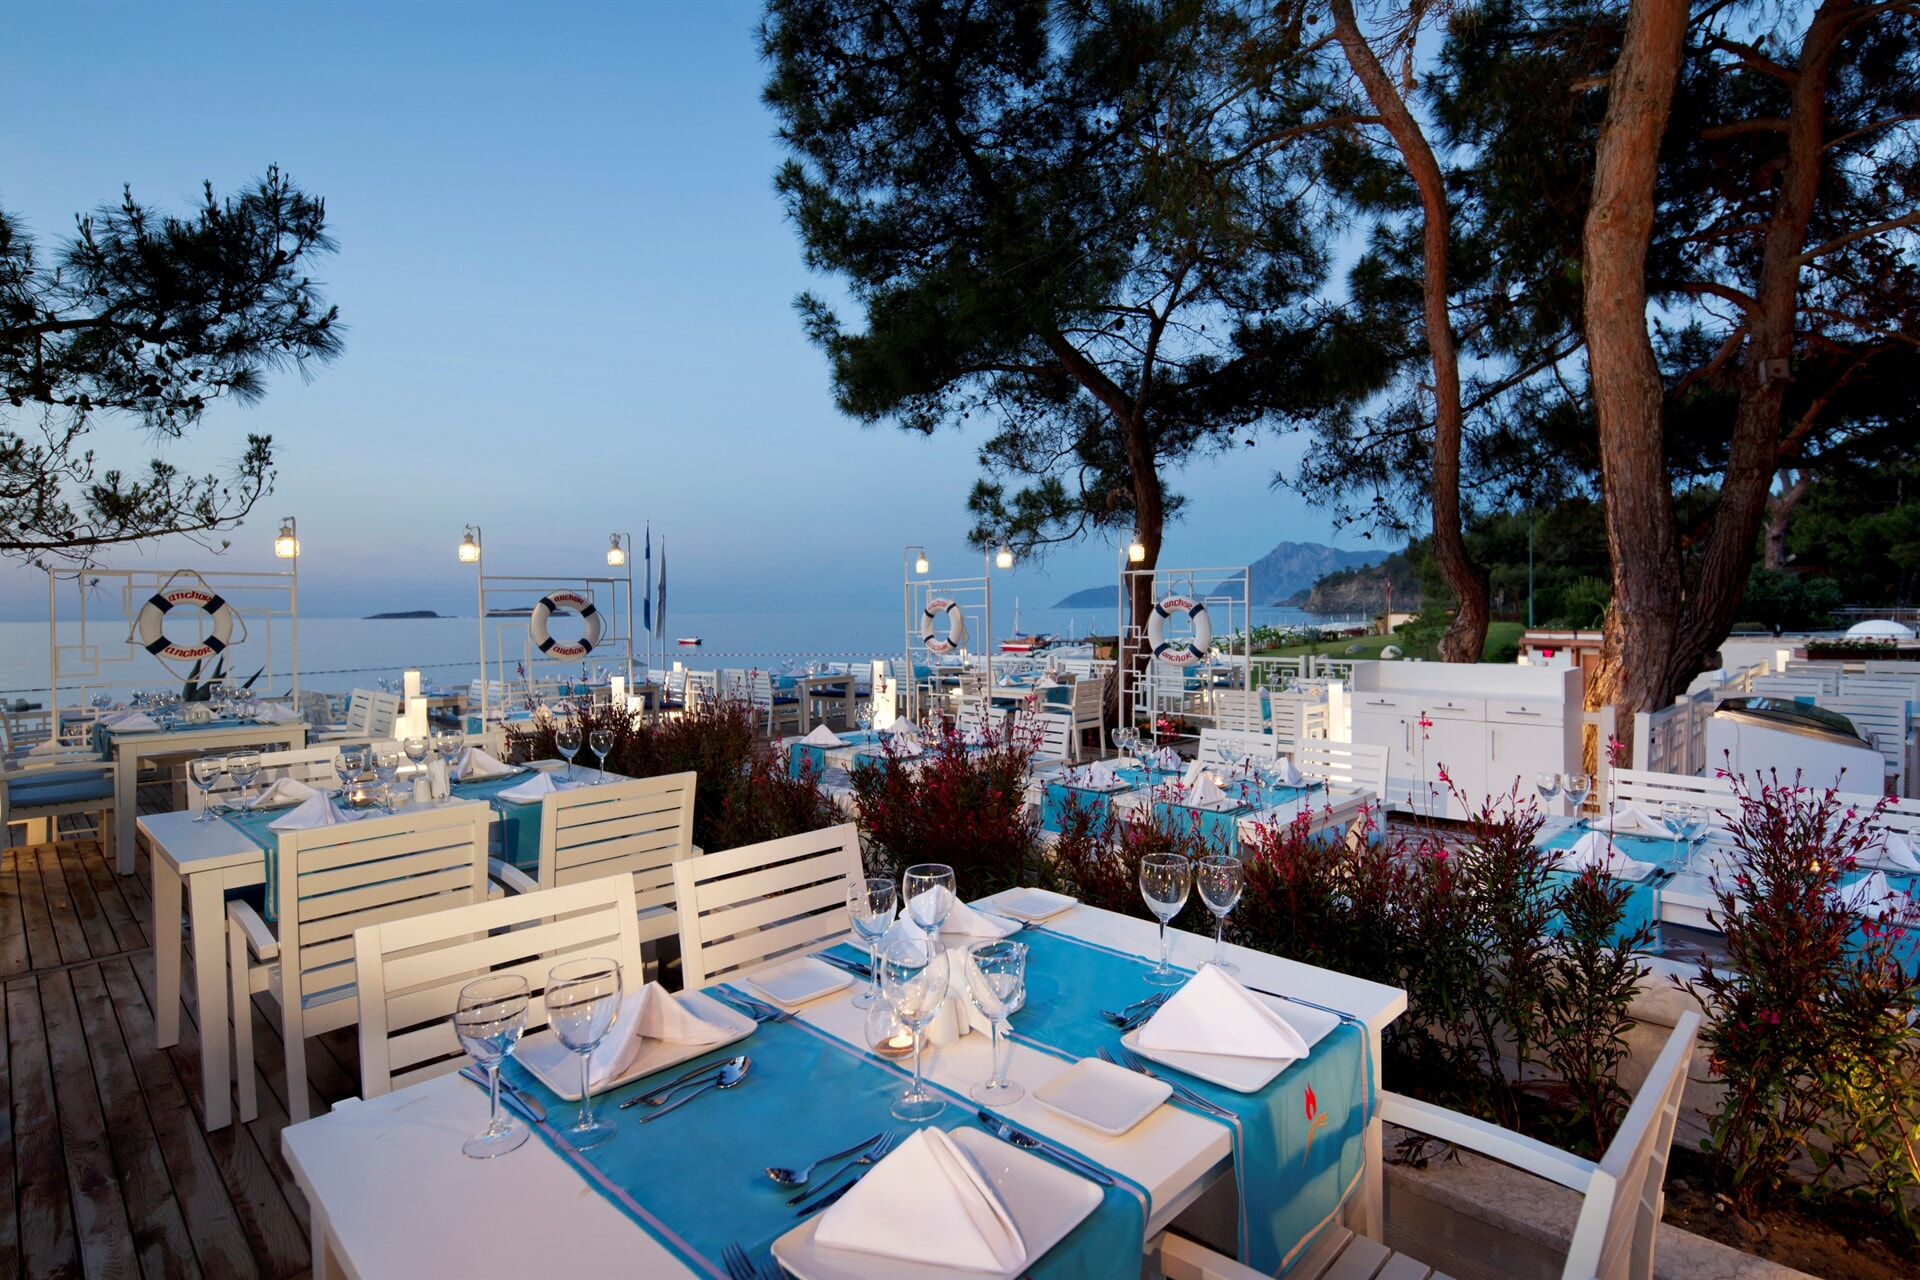 Seasonal fish and seafood meu accompanied by a romantic landspace will add color to your evenings.